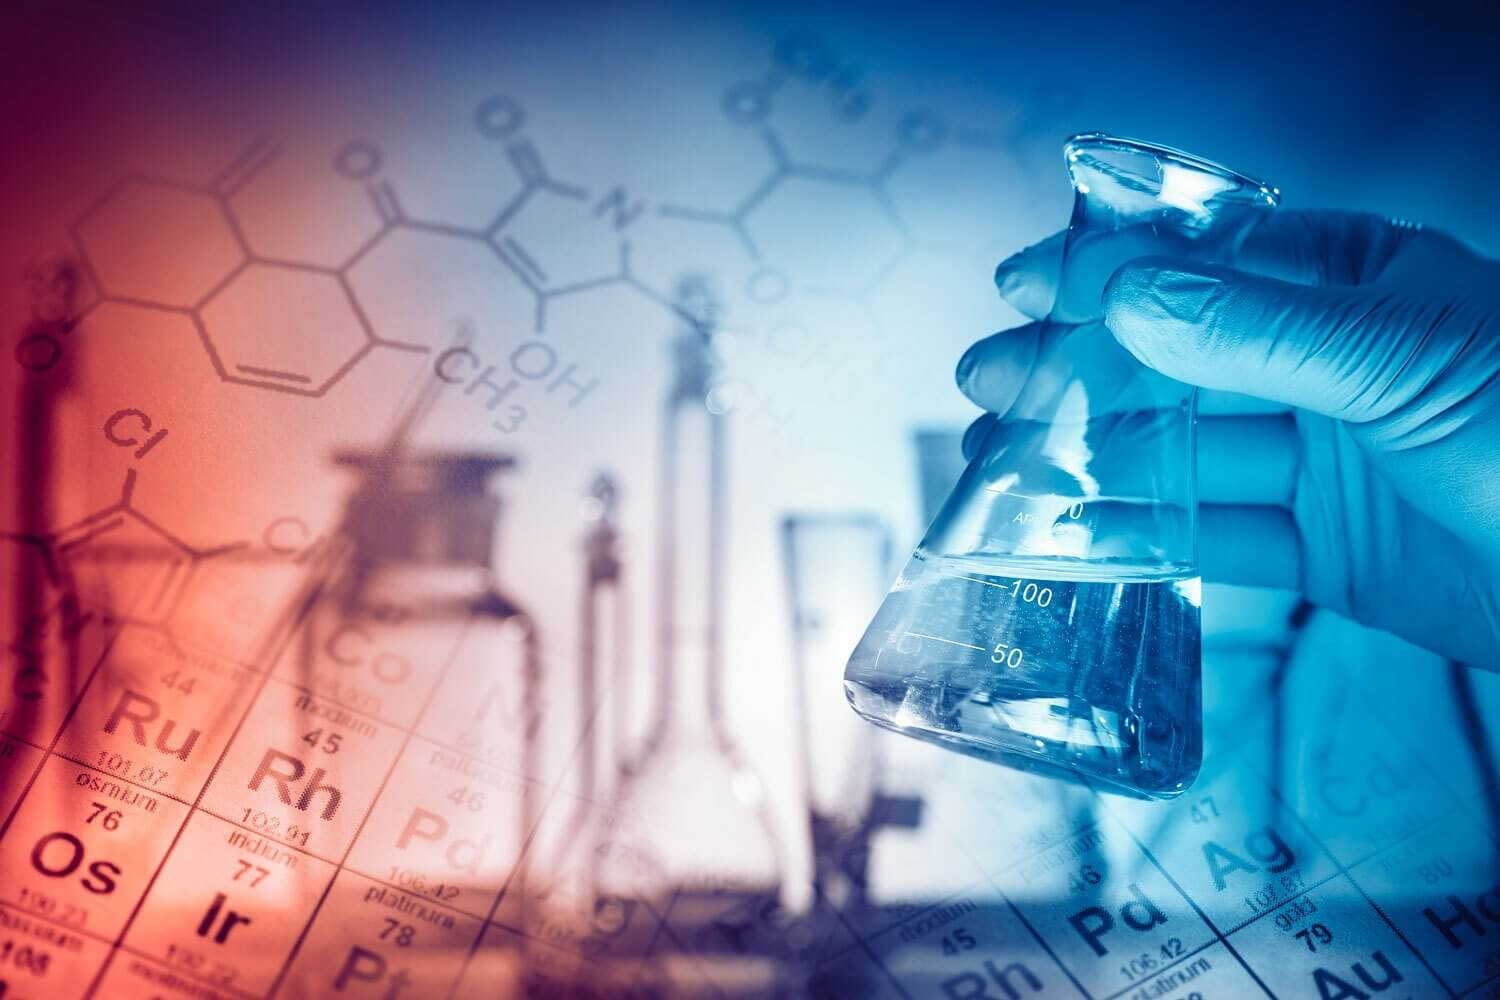 Technology and innovation in the biotech sector